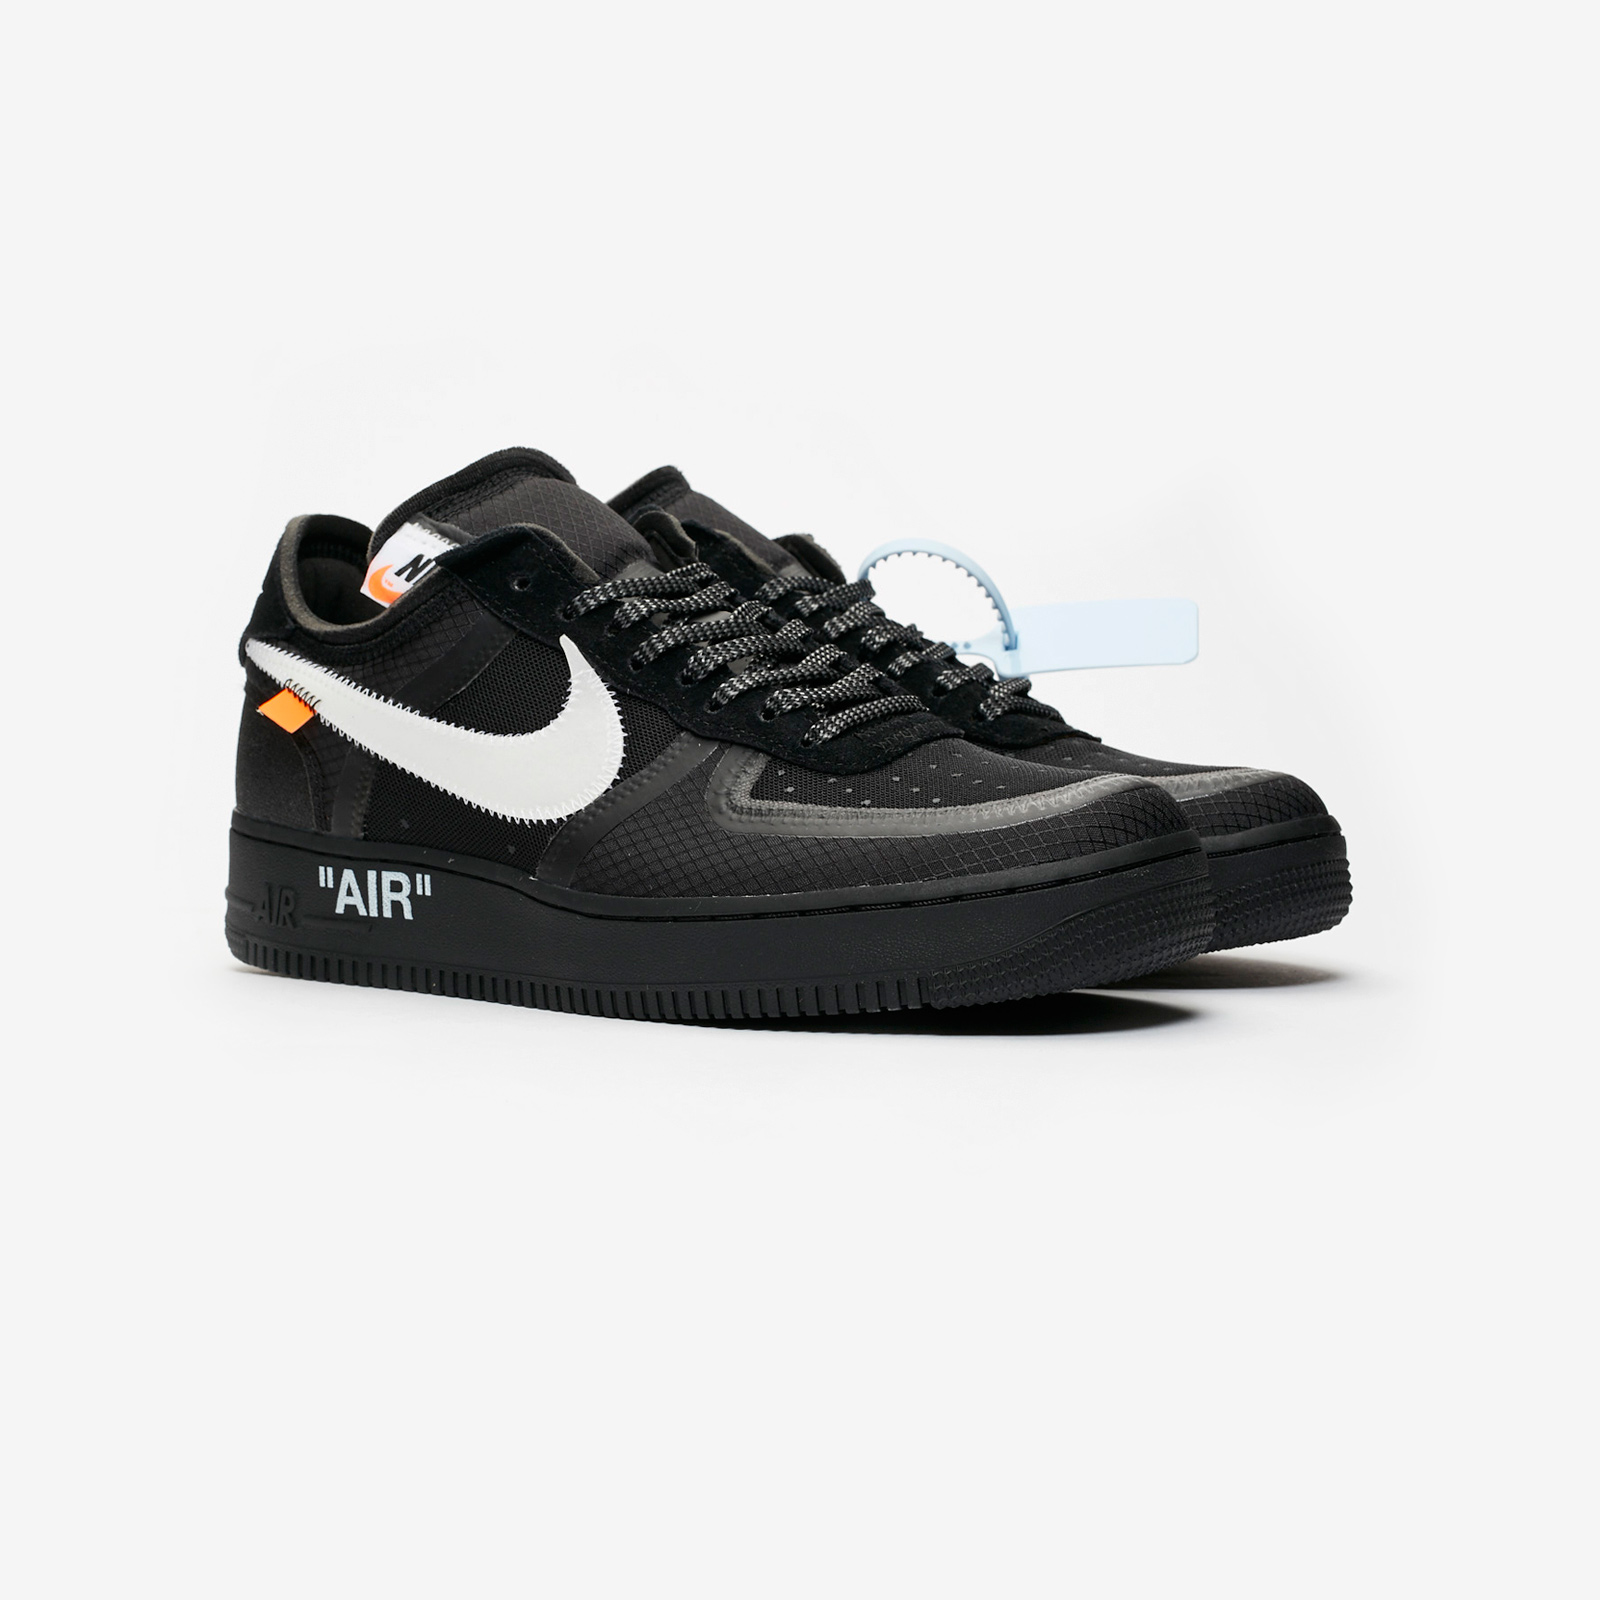 fe68eb1c53f Nike The 10  Air Force 1 Low - Ao4606-001 - Sneakersnstuff ...